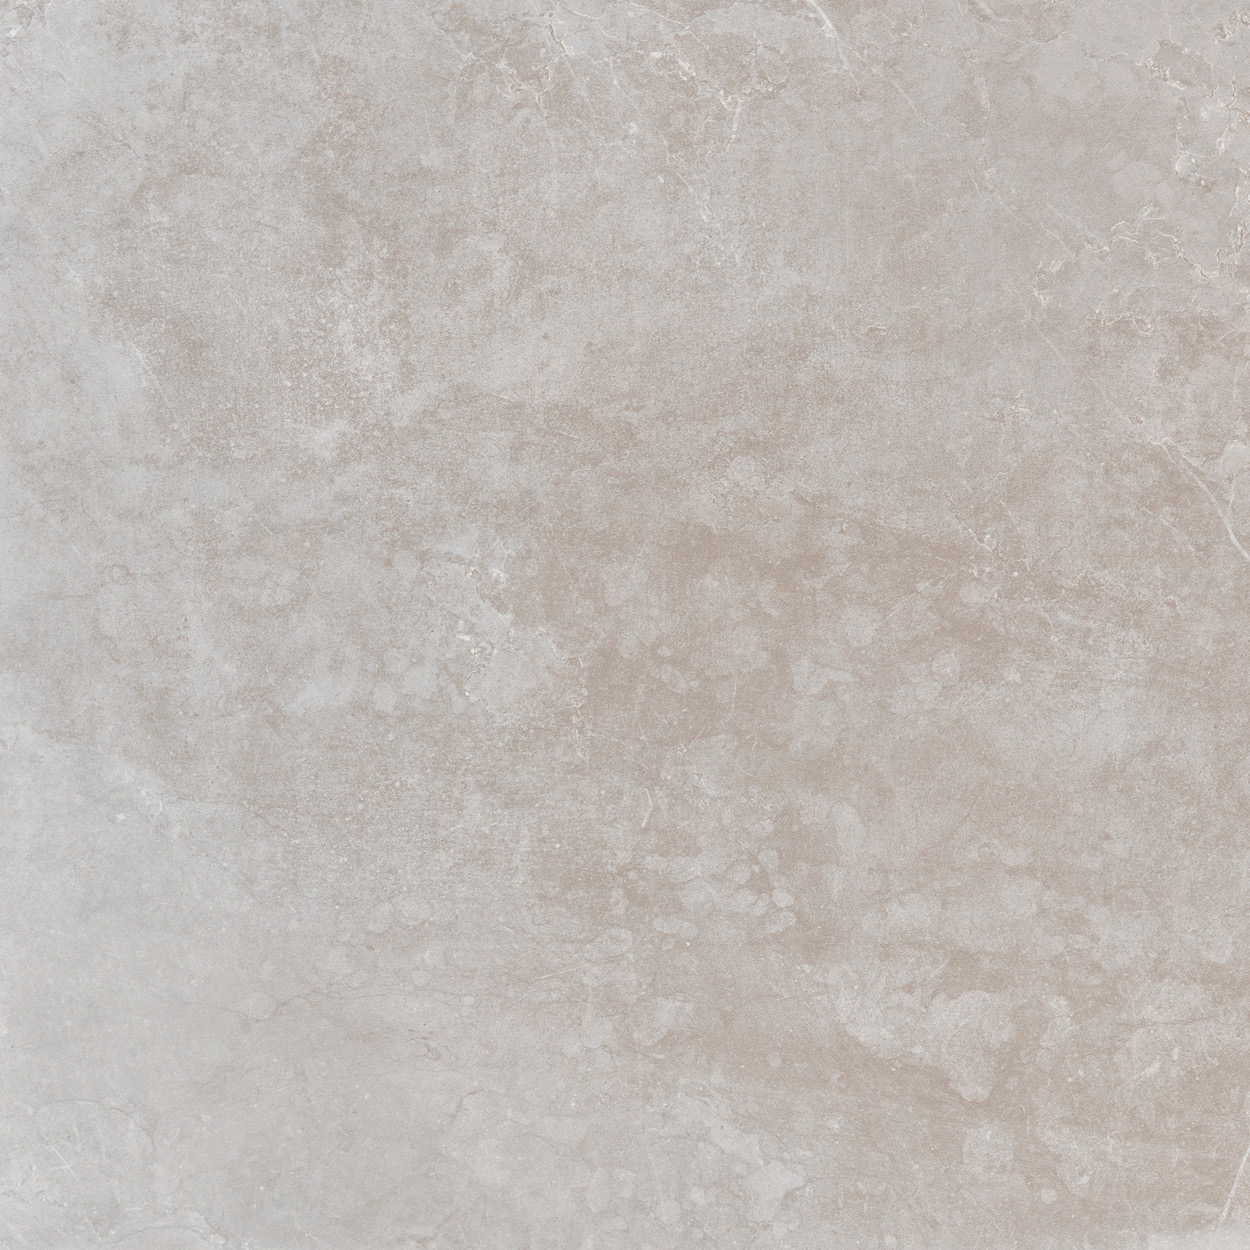 16 X 32 Evo Stone Mist Honed finished Rectified Porcelain Tile (SPECIAL ORDER ONLY)